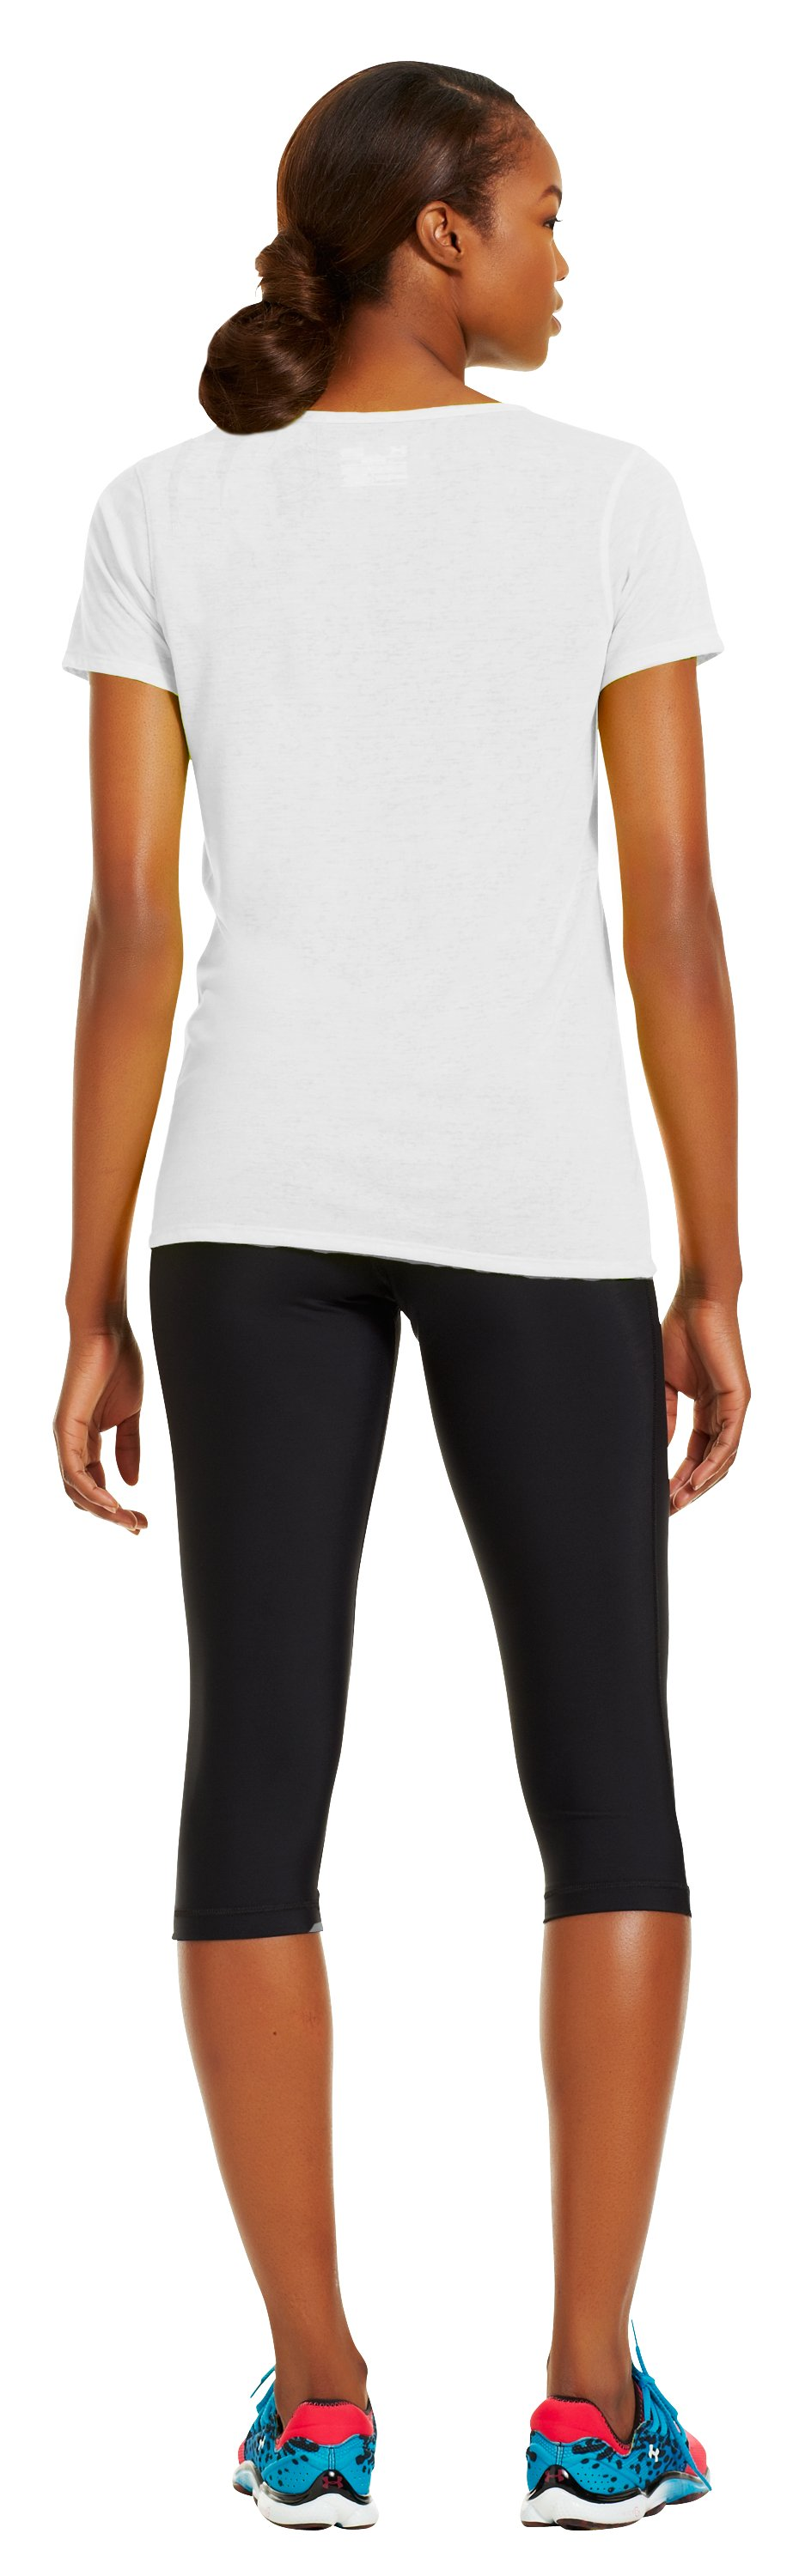 Women's Achieve Burnout T-Shirt, White, Back